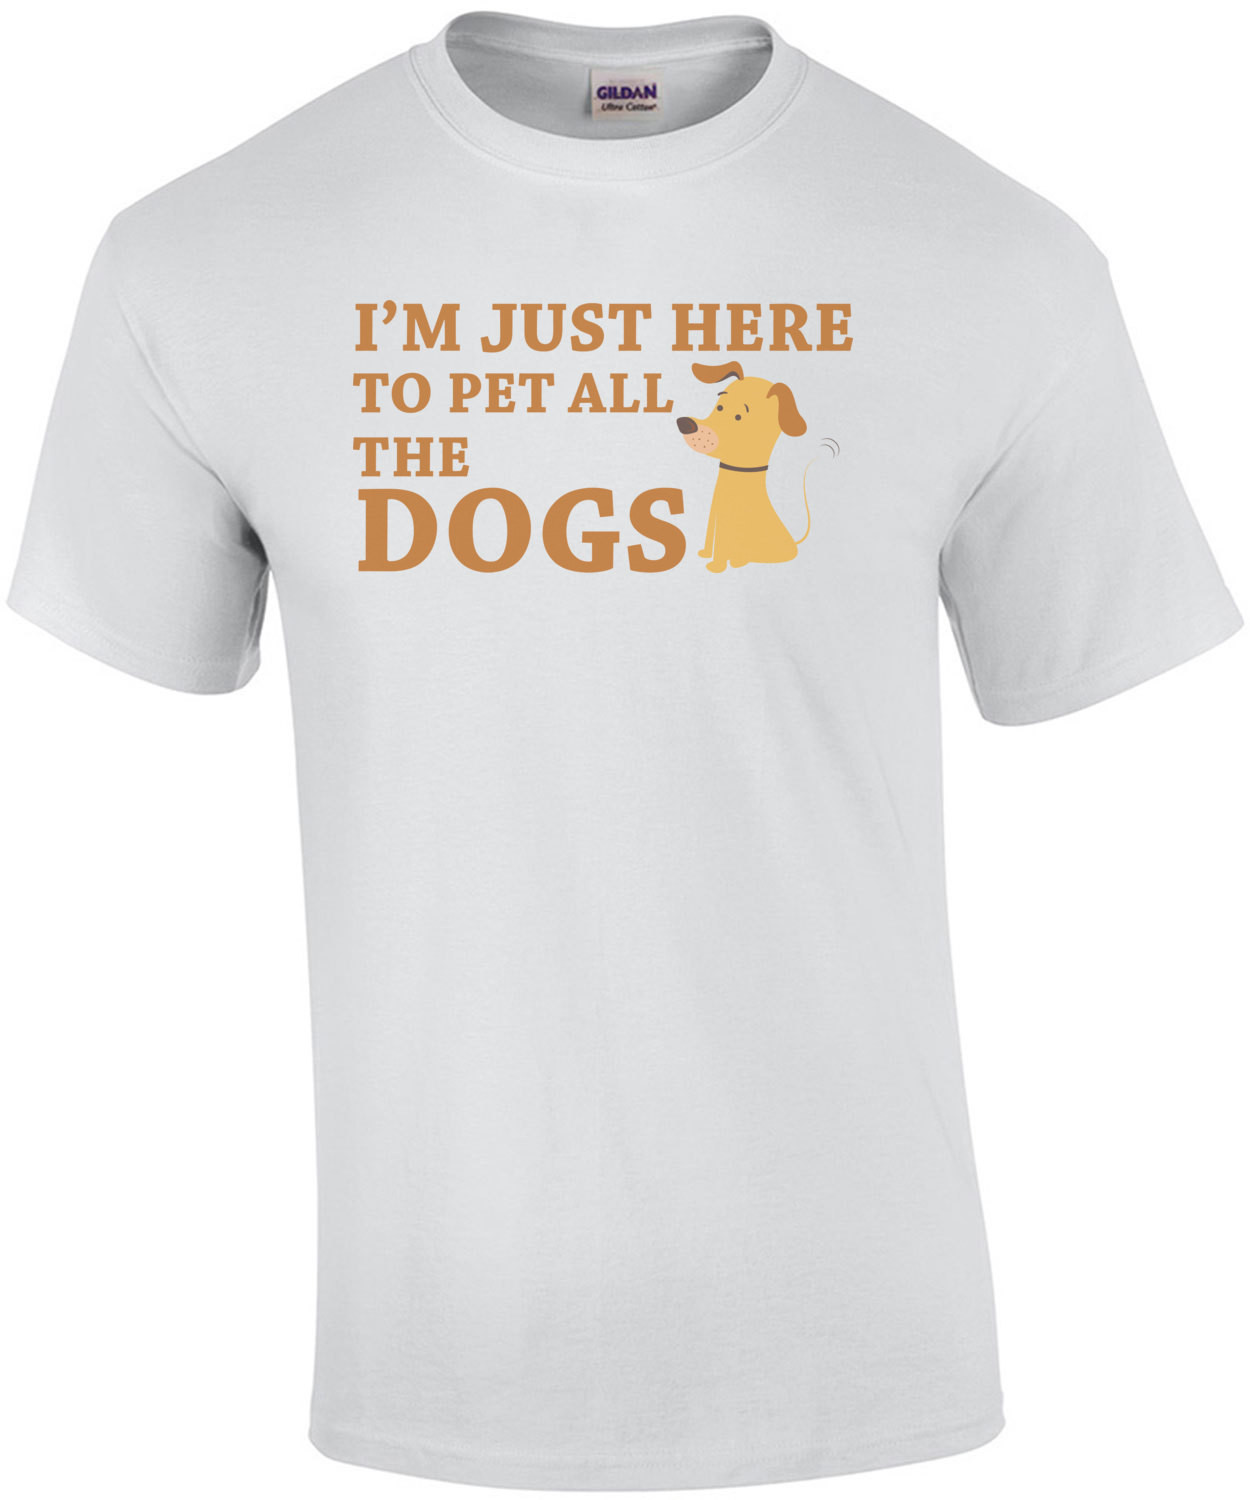 I'm just here to pet all the dogs - dog lover t-shirt